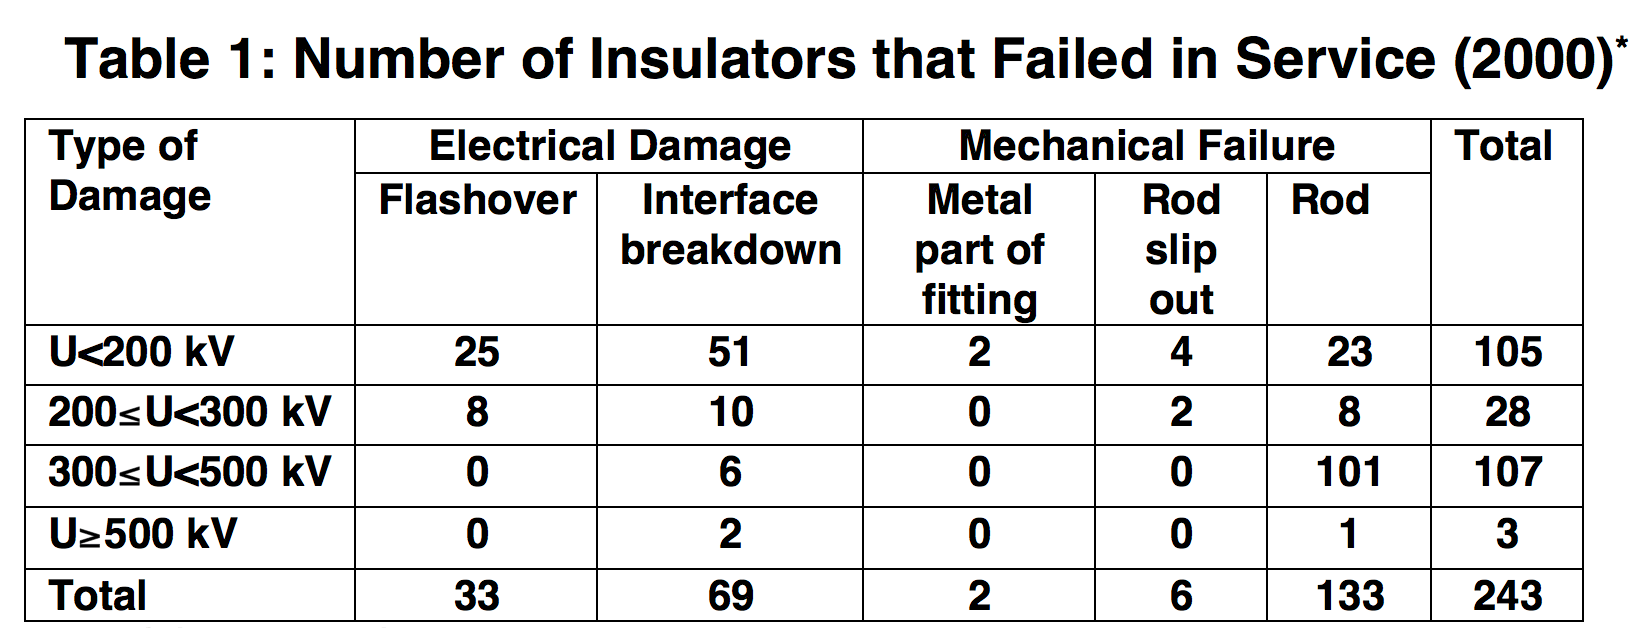 * Data from CIGRE Working Group 22.03. Worldwide service experience with HV composite insulators. Electra, 2000(191): 27-43. [object object] Key Issues for Future of Composite Insulators Screen Shot 2018 09 28 at 15